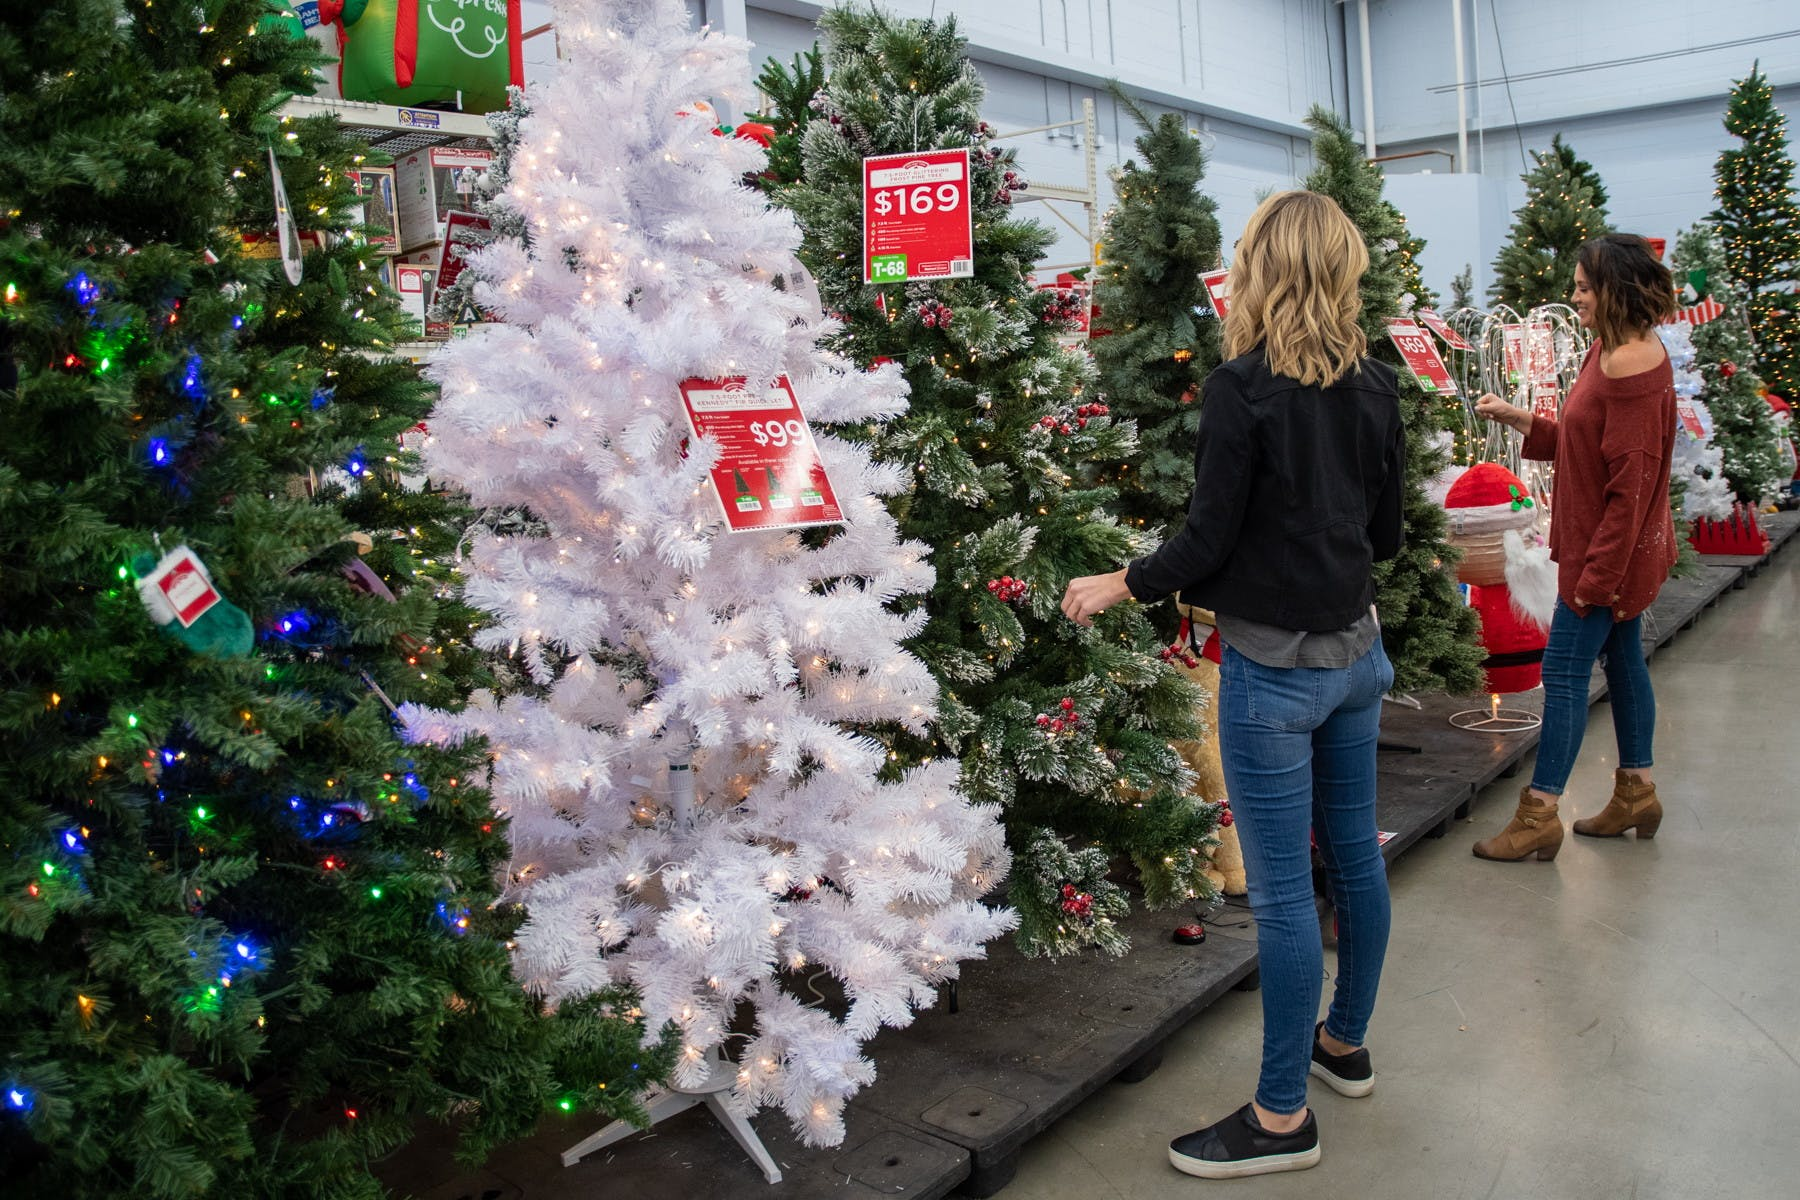 Black Friday Christmas Tree 2020 Best Black Friday Christmas Tree Deals 2020   The Krazy Coupon Lady